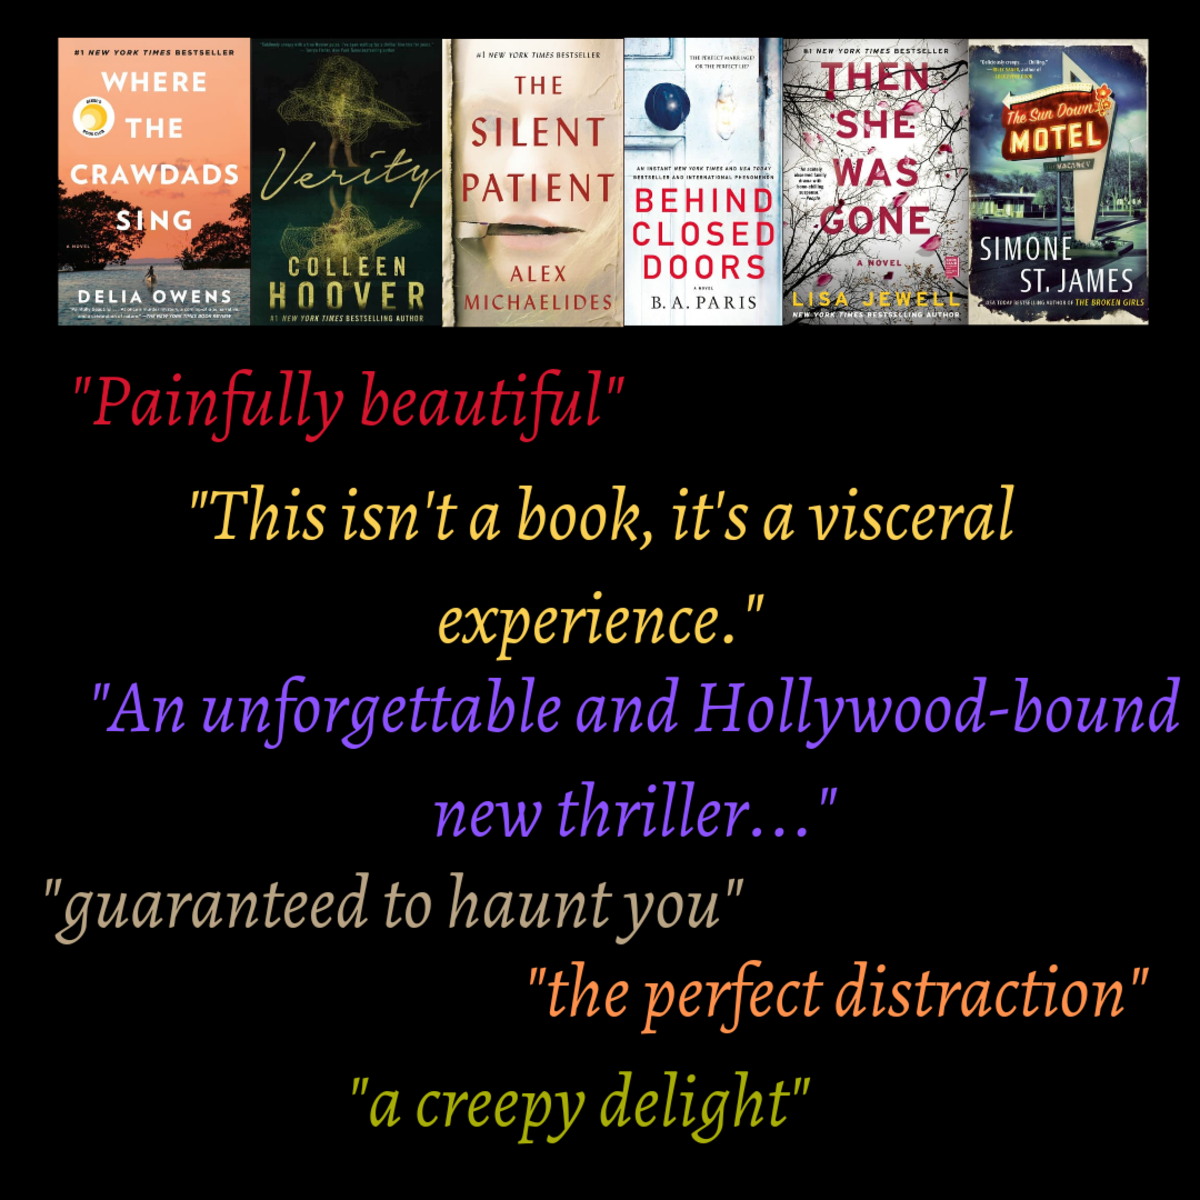 bestselling-mystery-thriller-books-you-shouldnt-miss